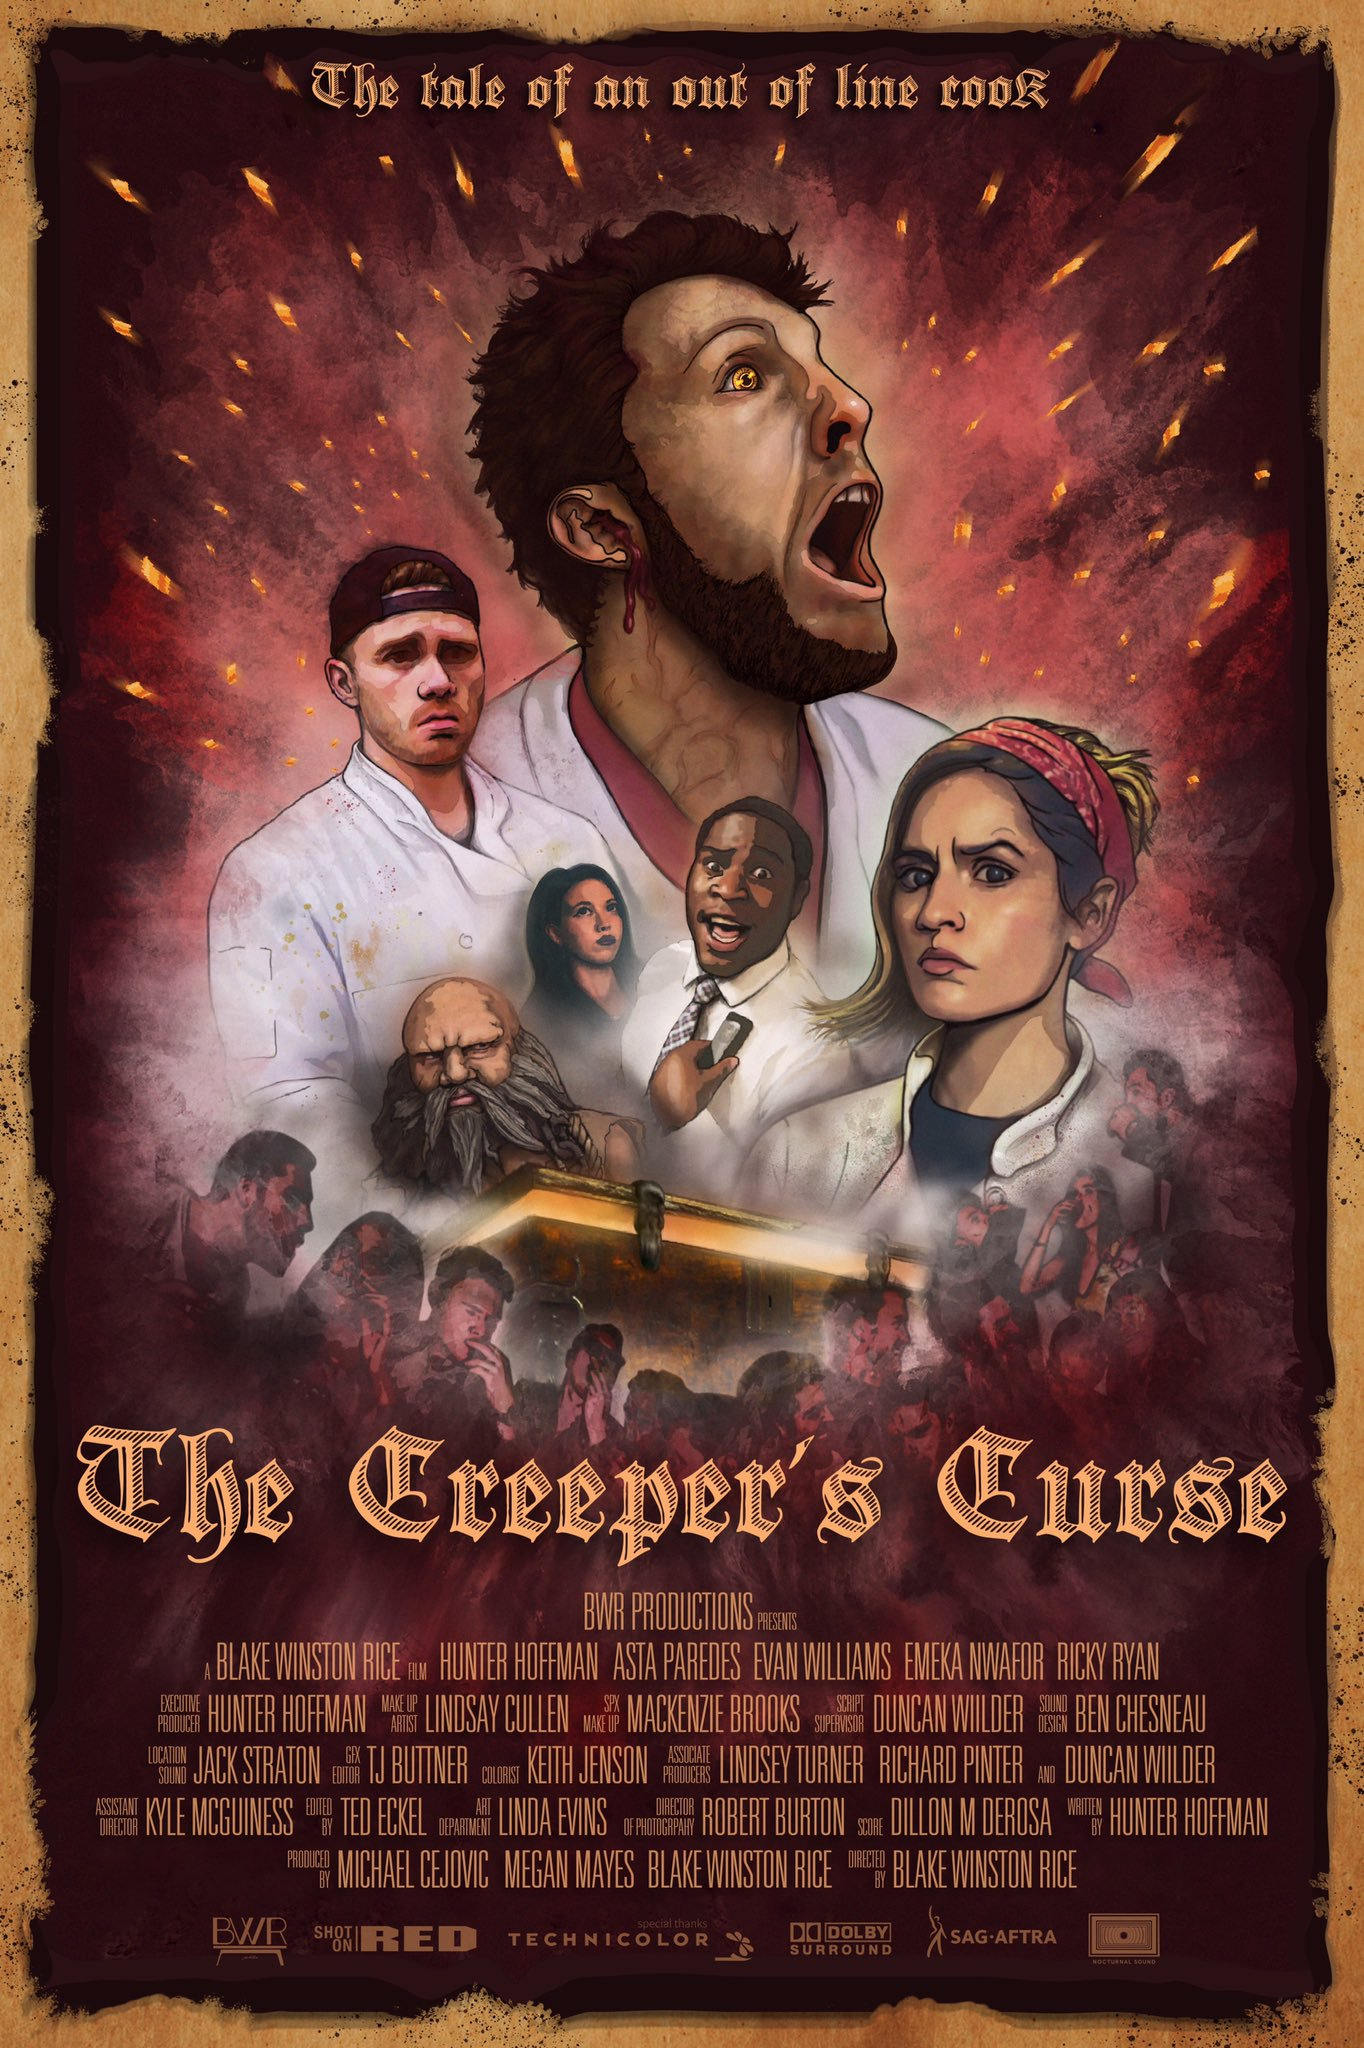 Curse Official, Hunter Hoffman, Creeper's Curse Poster, Poster